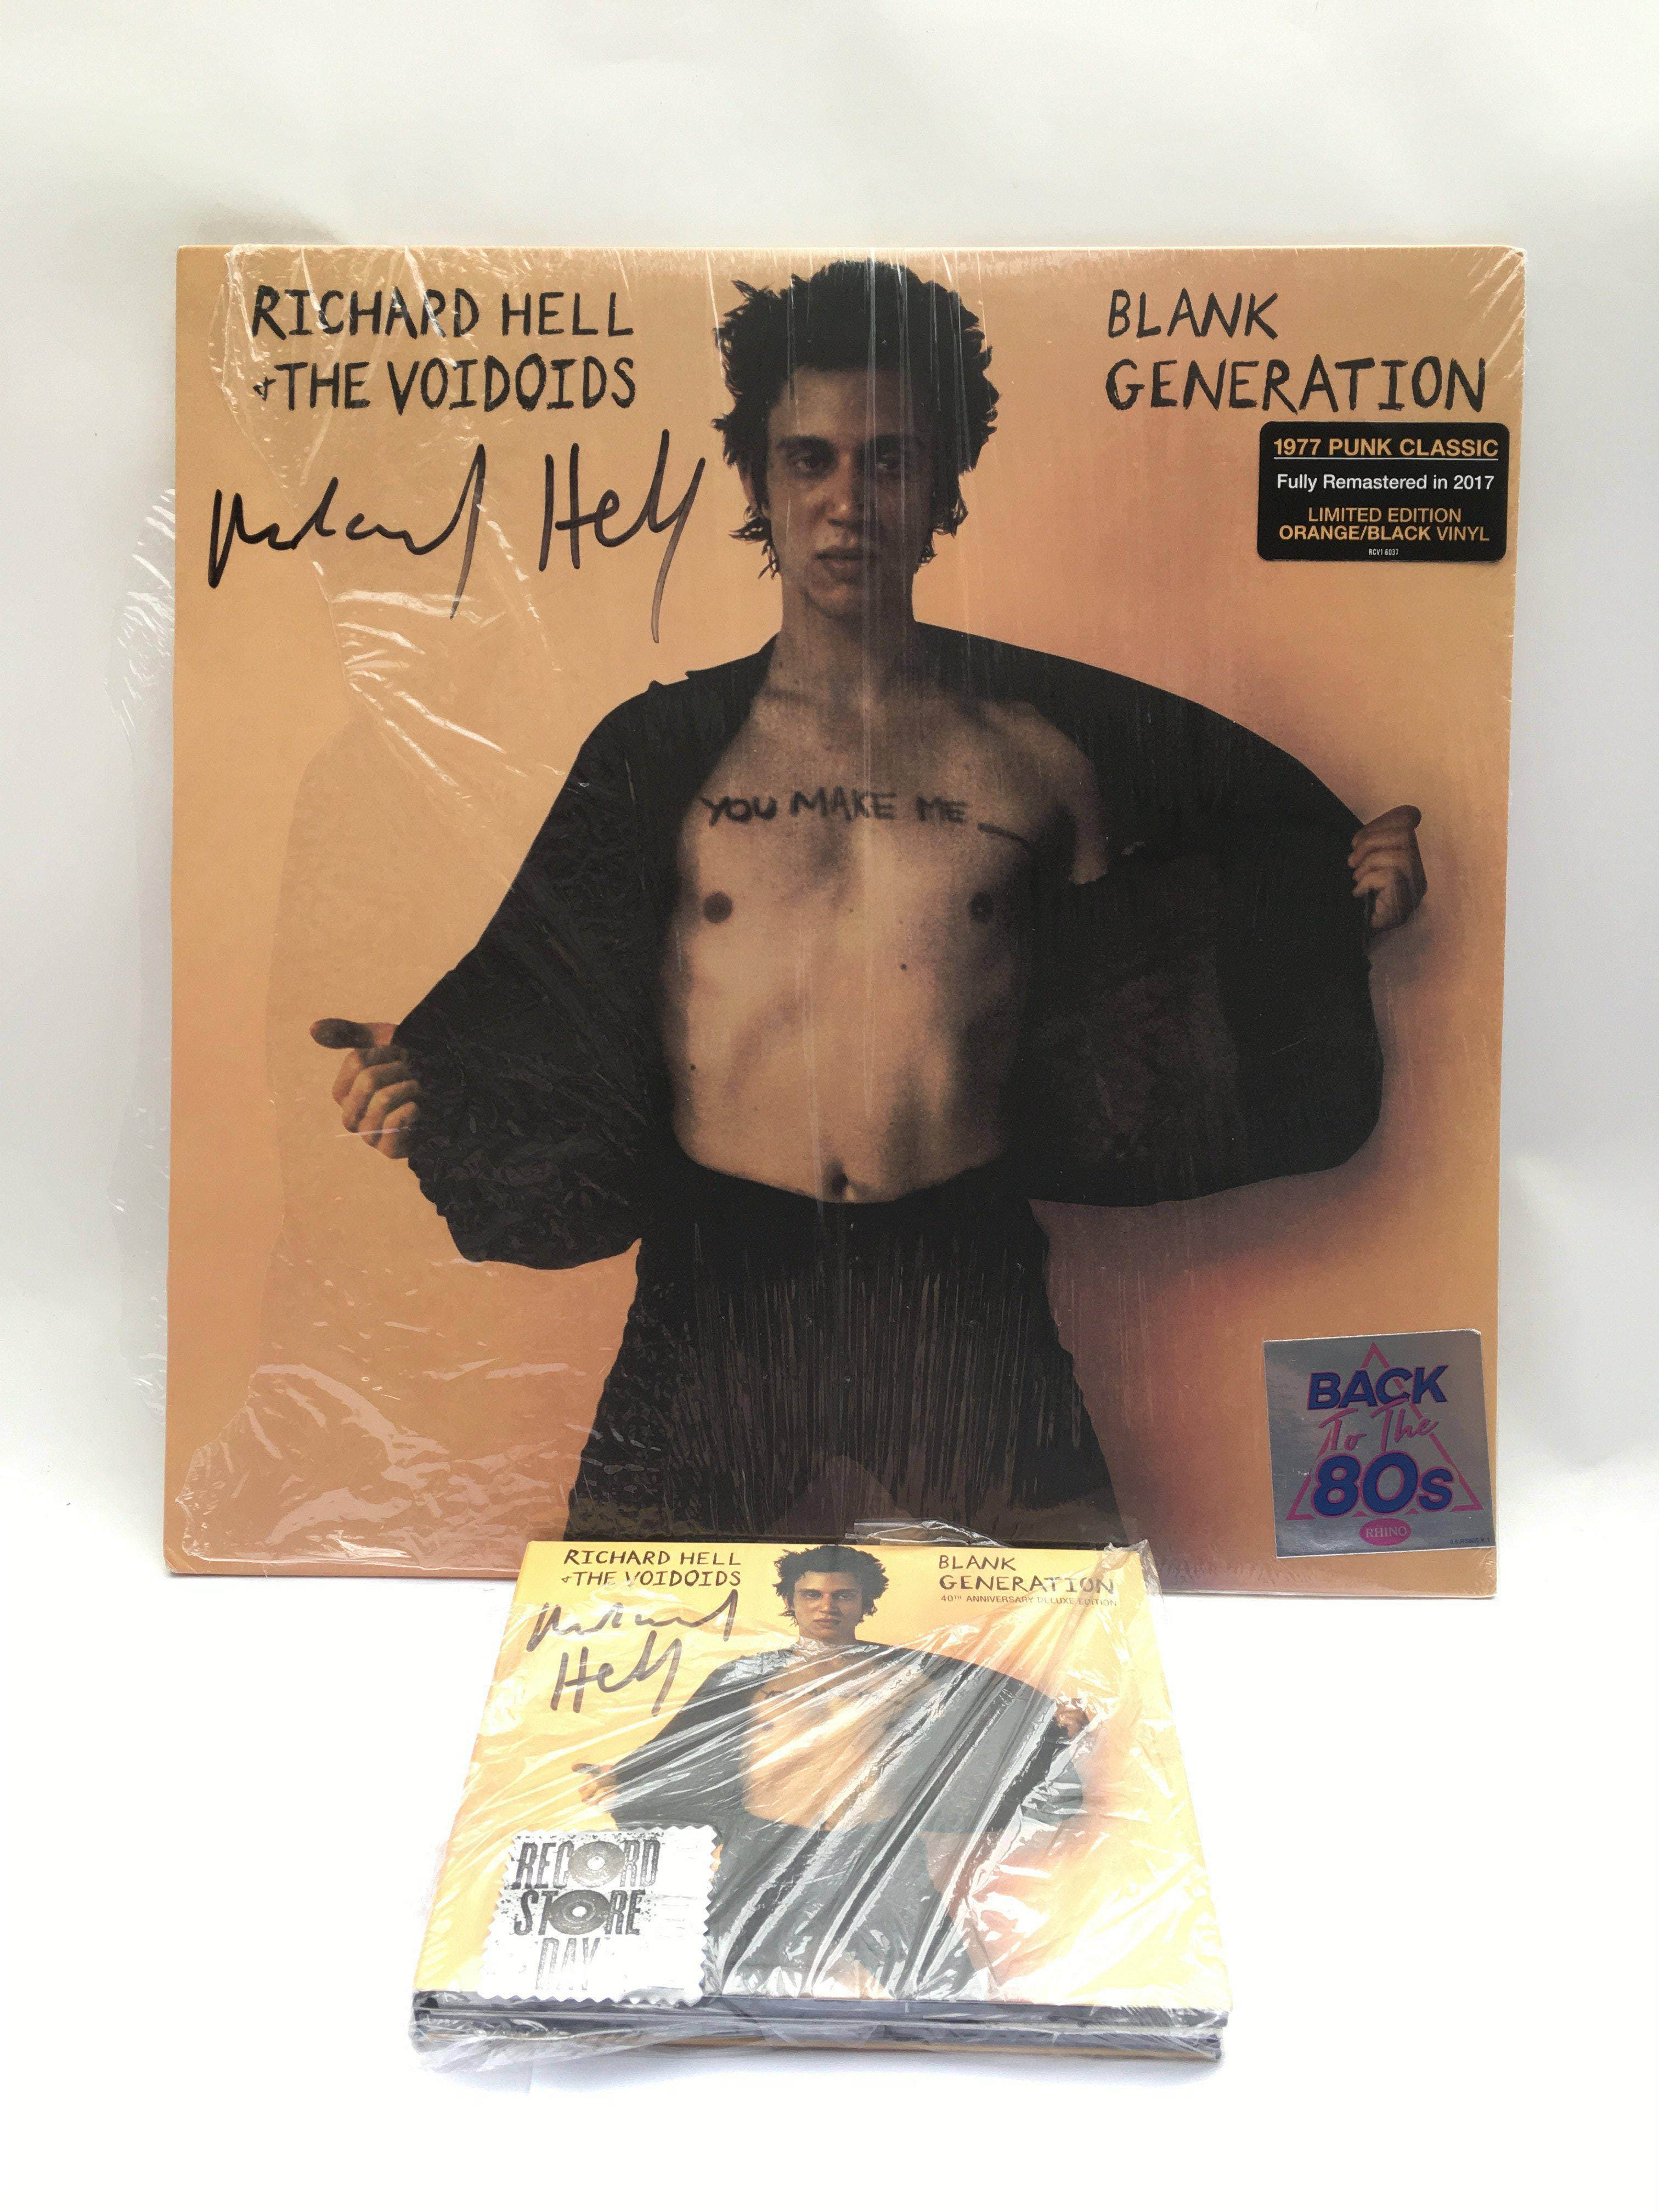 A Richard Hell signed coloured vinyl 2017 reissue